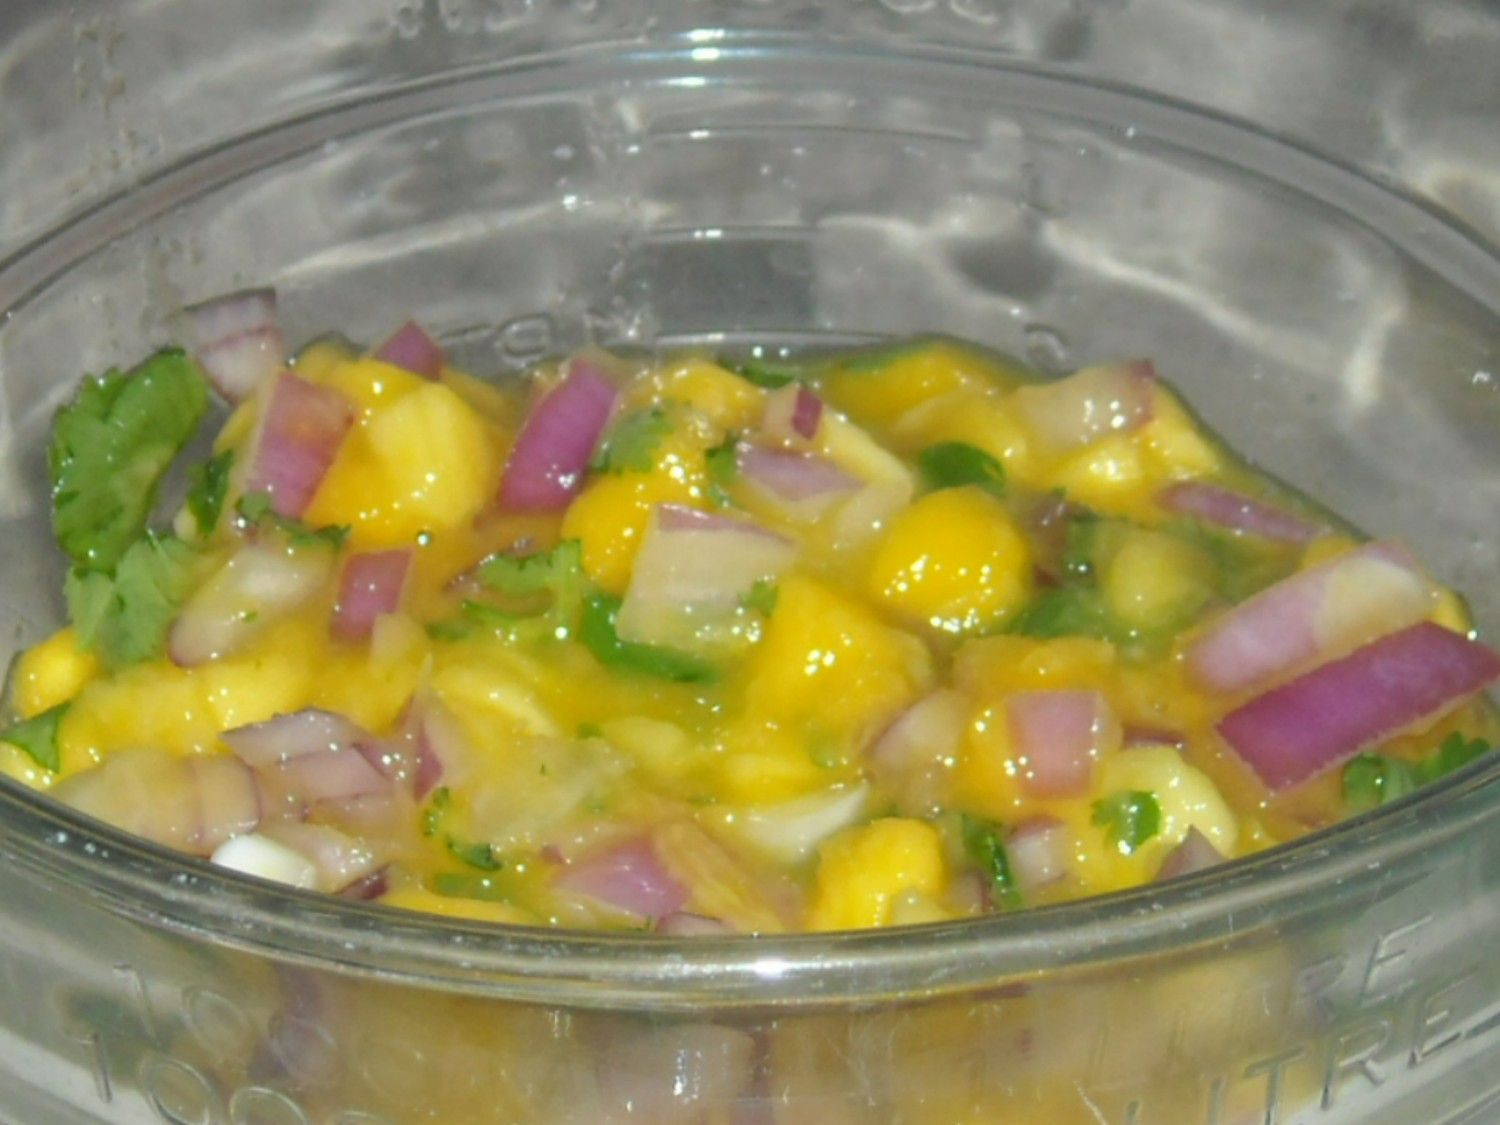 Mangos are a really sweet and refreshing fruit. They are also usually available at a reasonable price year round. Serve on top of grilled chicken or fish. It's also great as a snack with t…